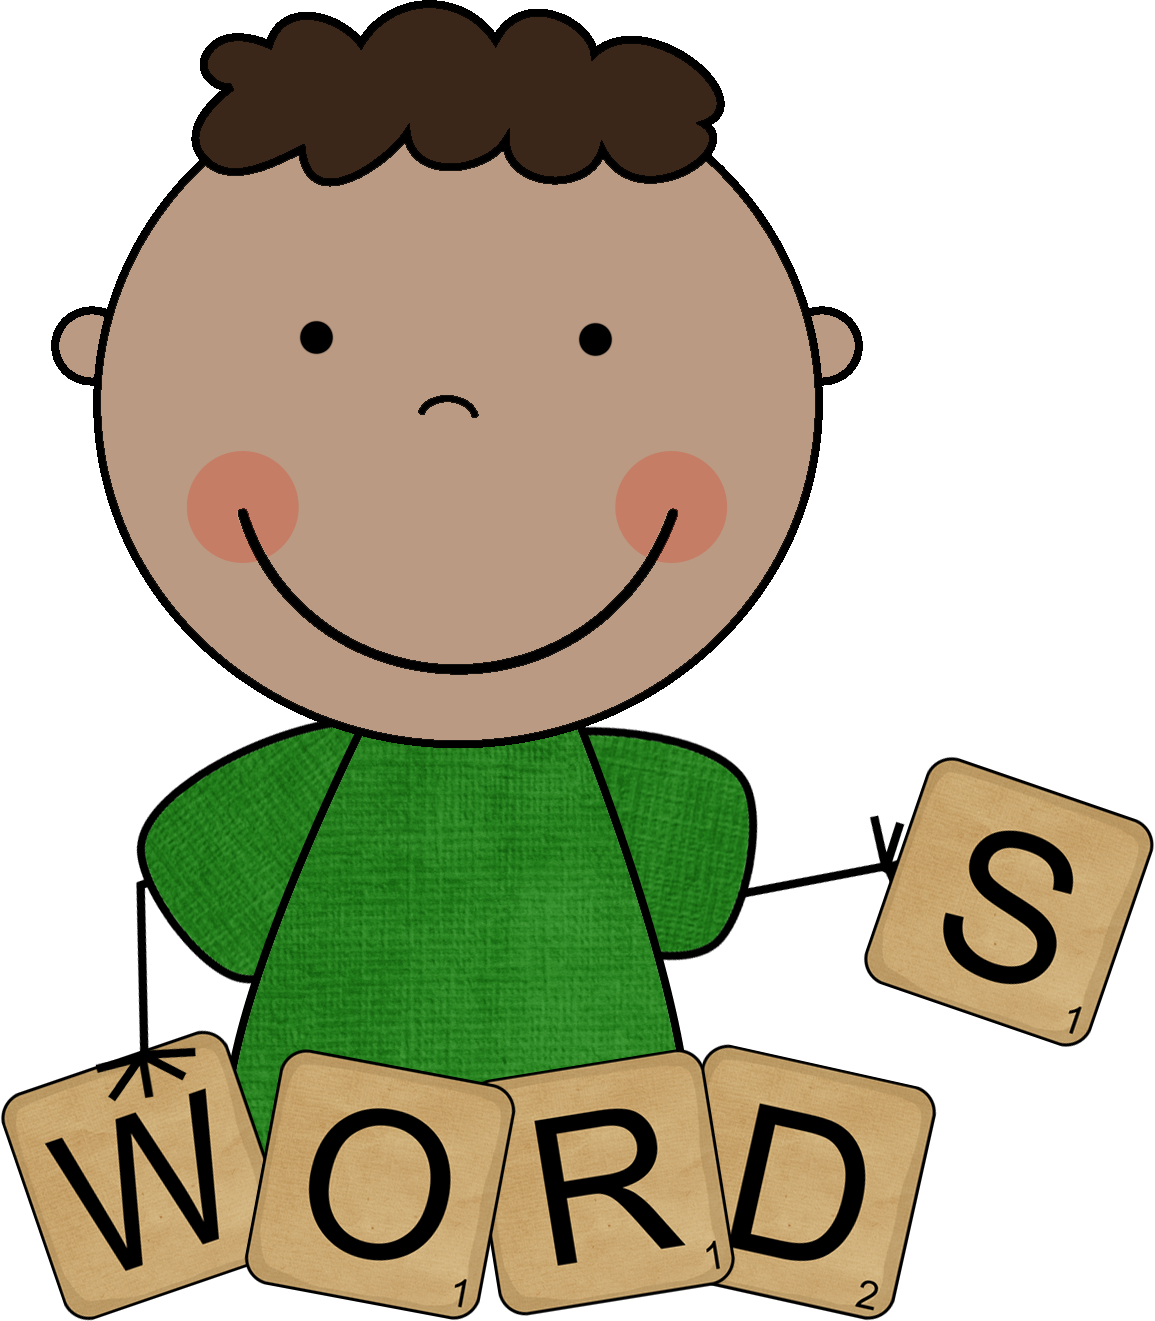 Word clipart school. Pin by nounplus on